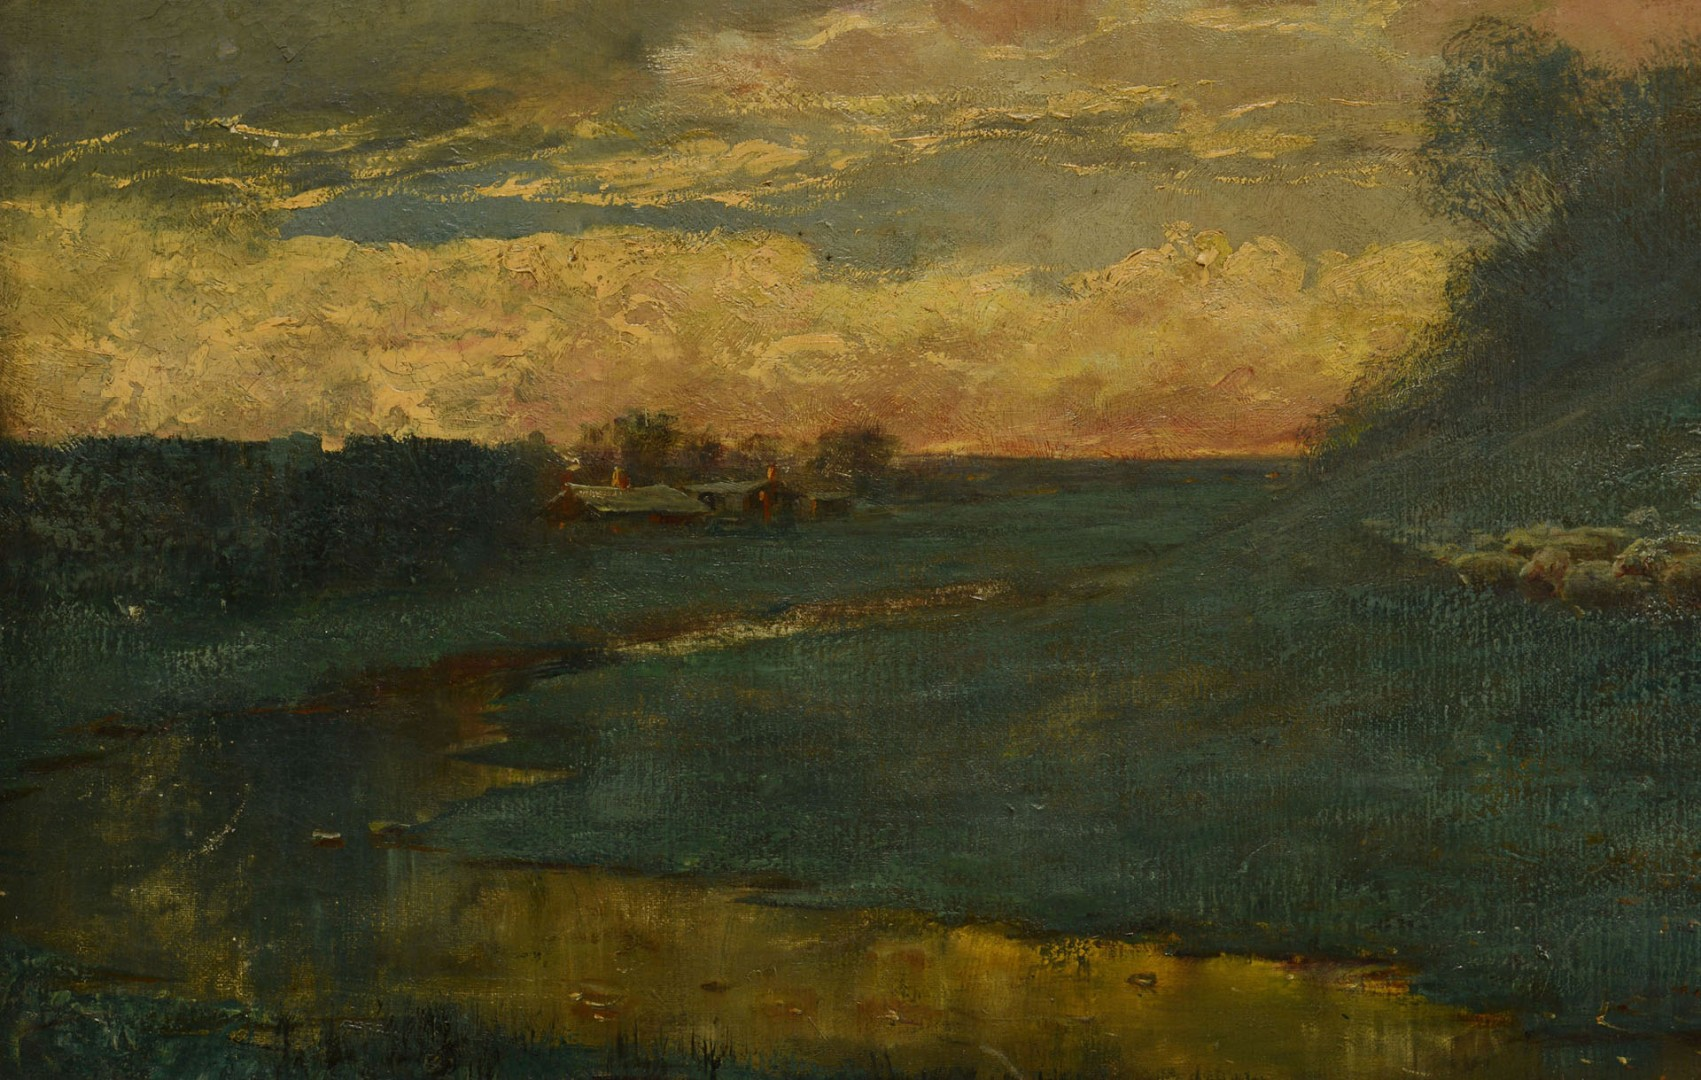 Large East TN Pastoral Landscape, J. W. Wallace, 1907